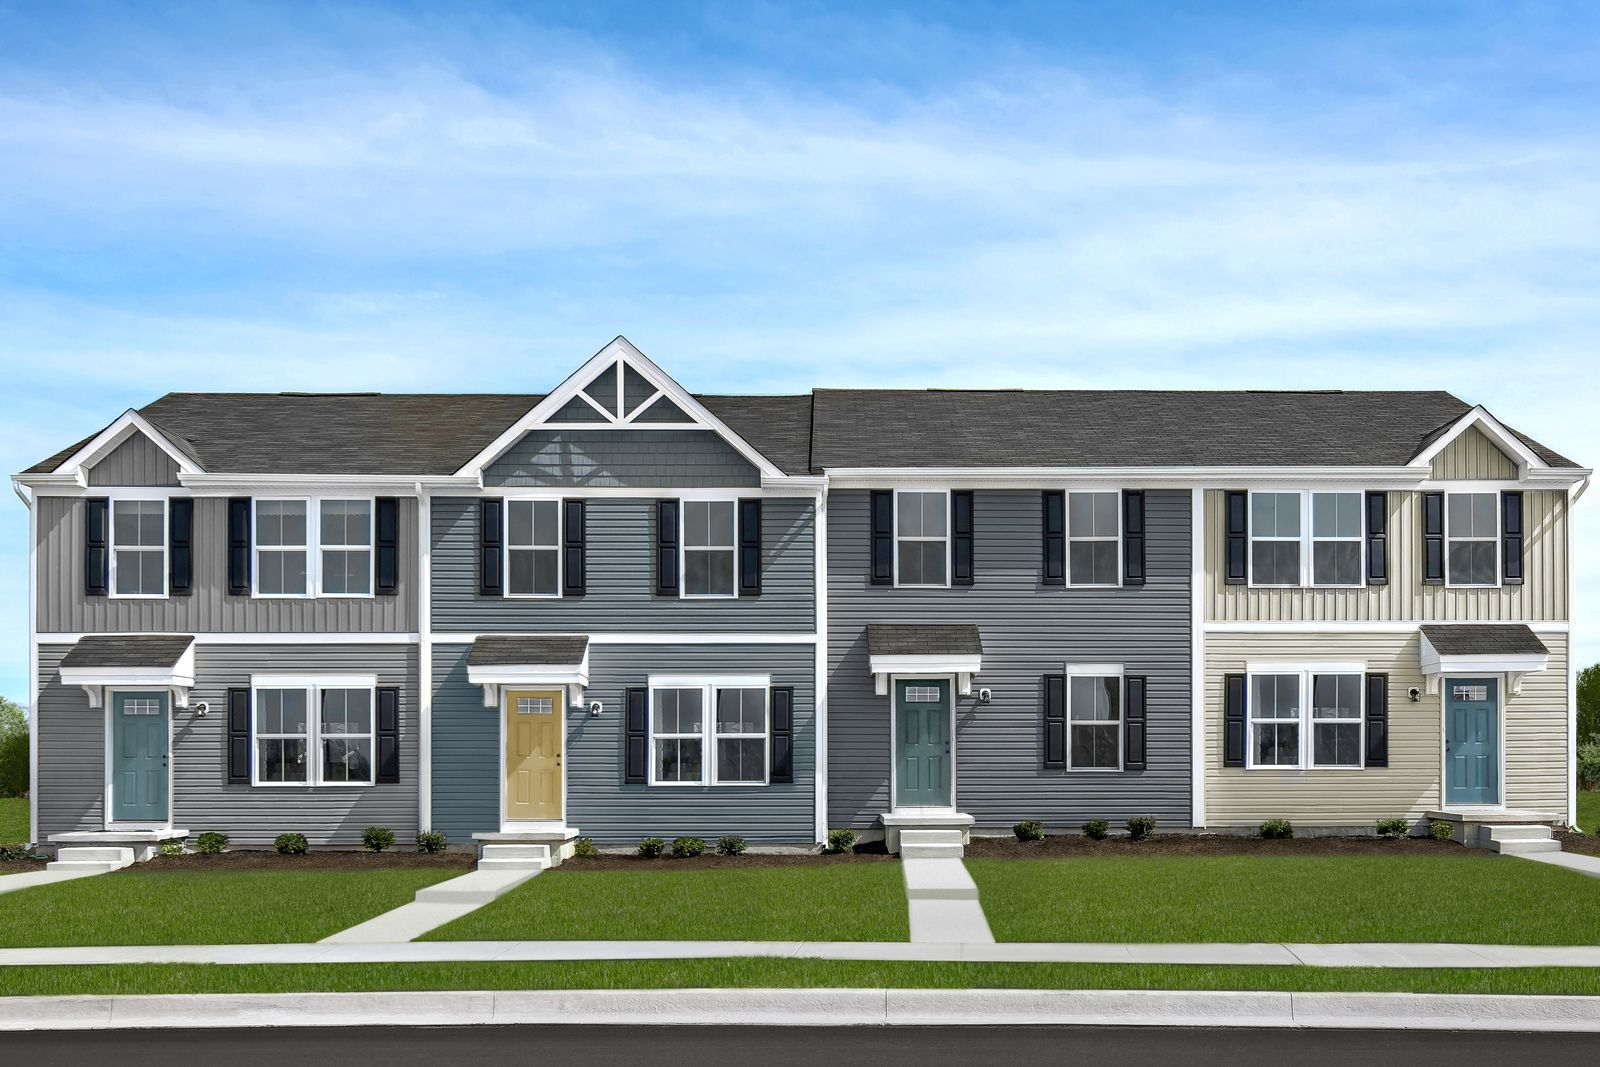 THORNTON GROVE TOWNHOMES - MID $200S:Finally own for the same or less than what you're paying in rent! Brand new, low-maintenance townhomes only 8 miles to downtown Nashville.Schedule a visit today!